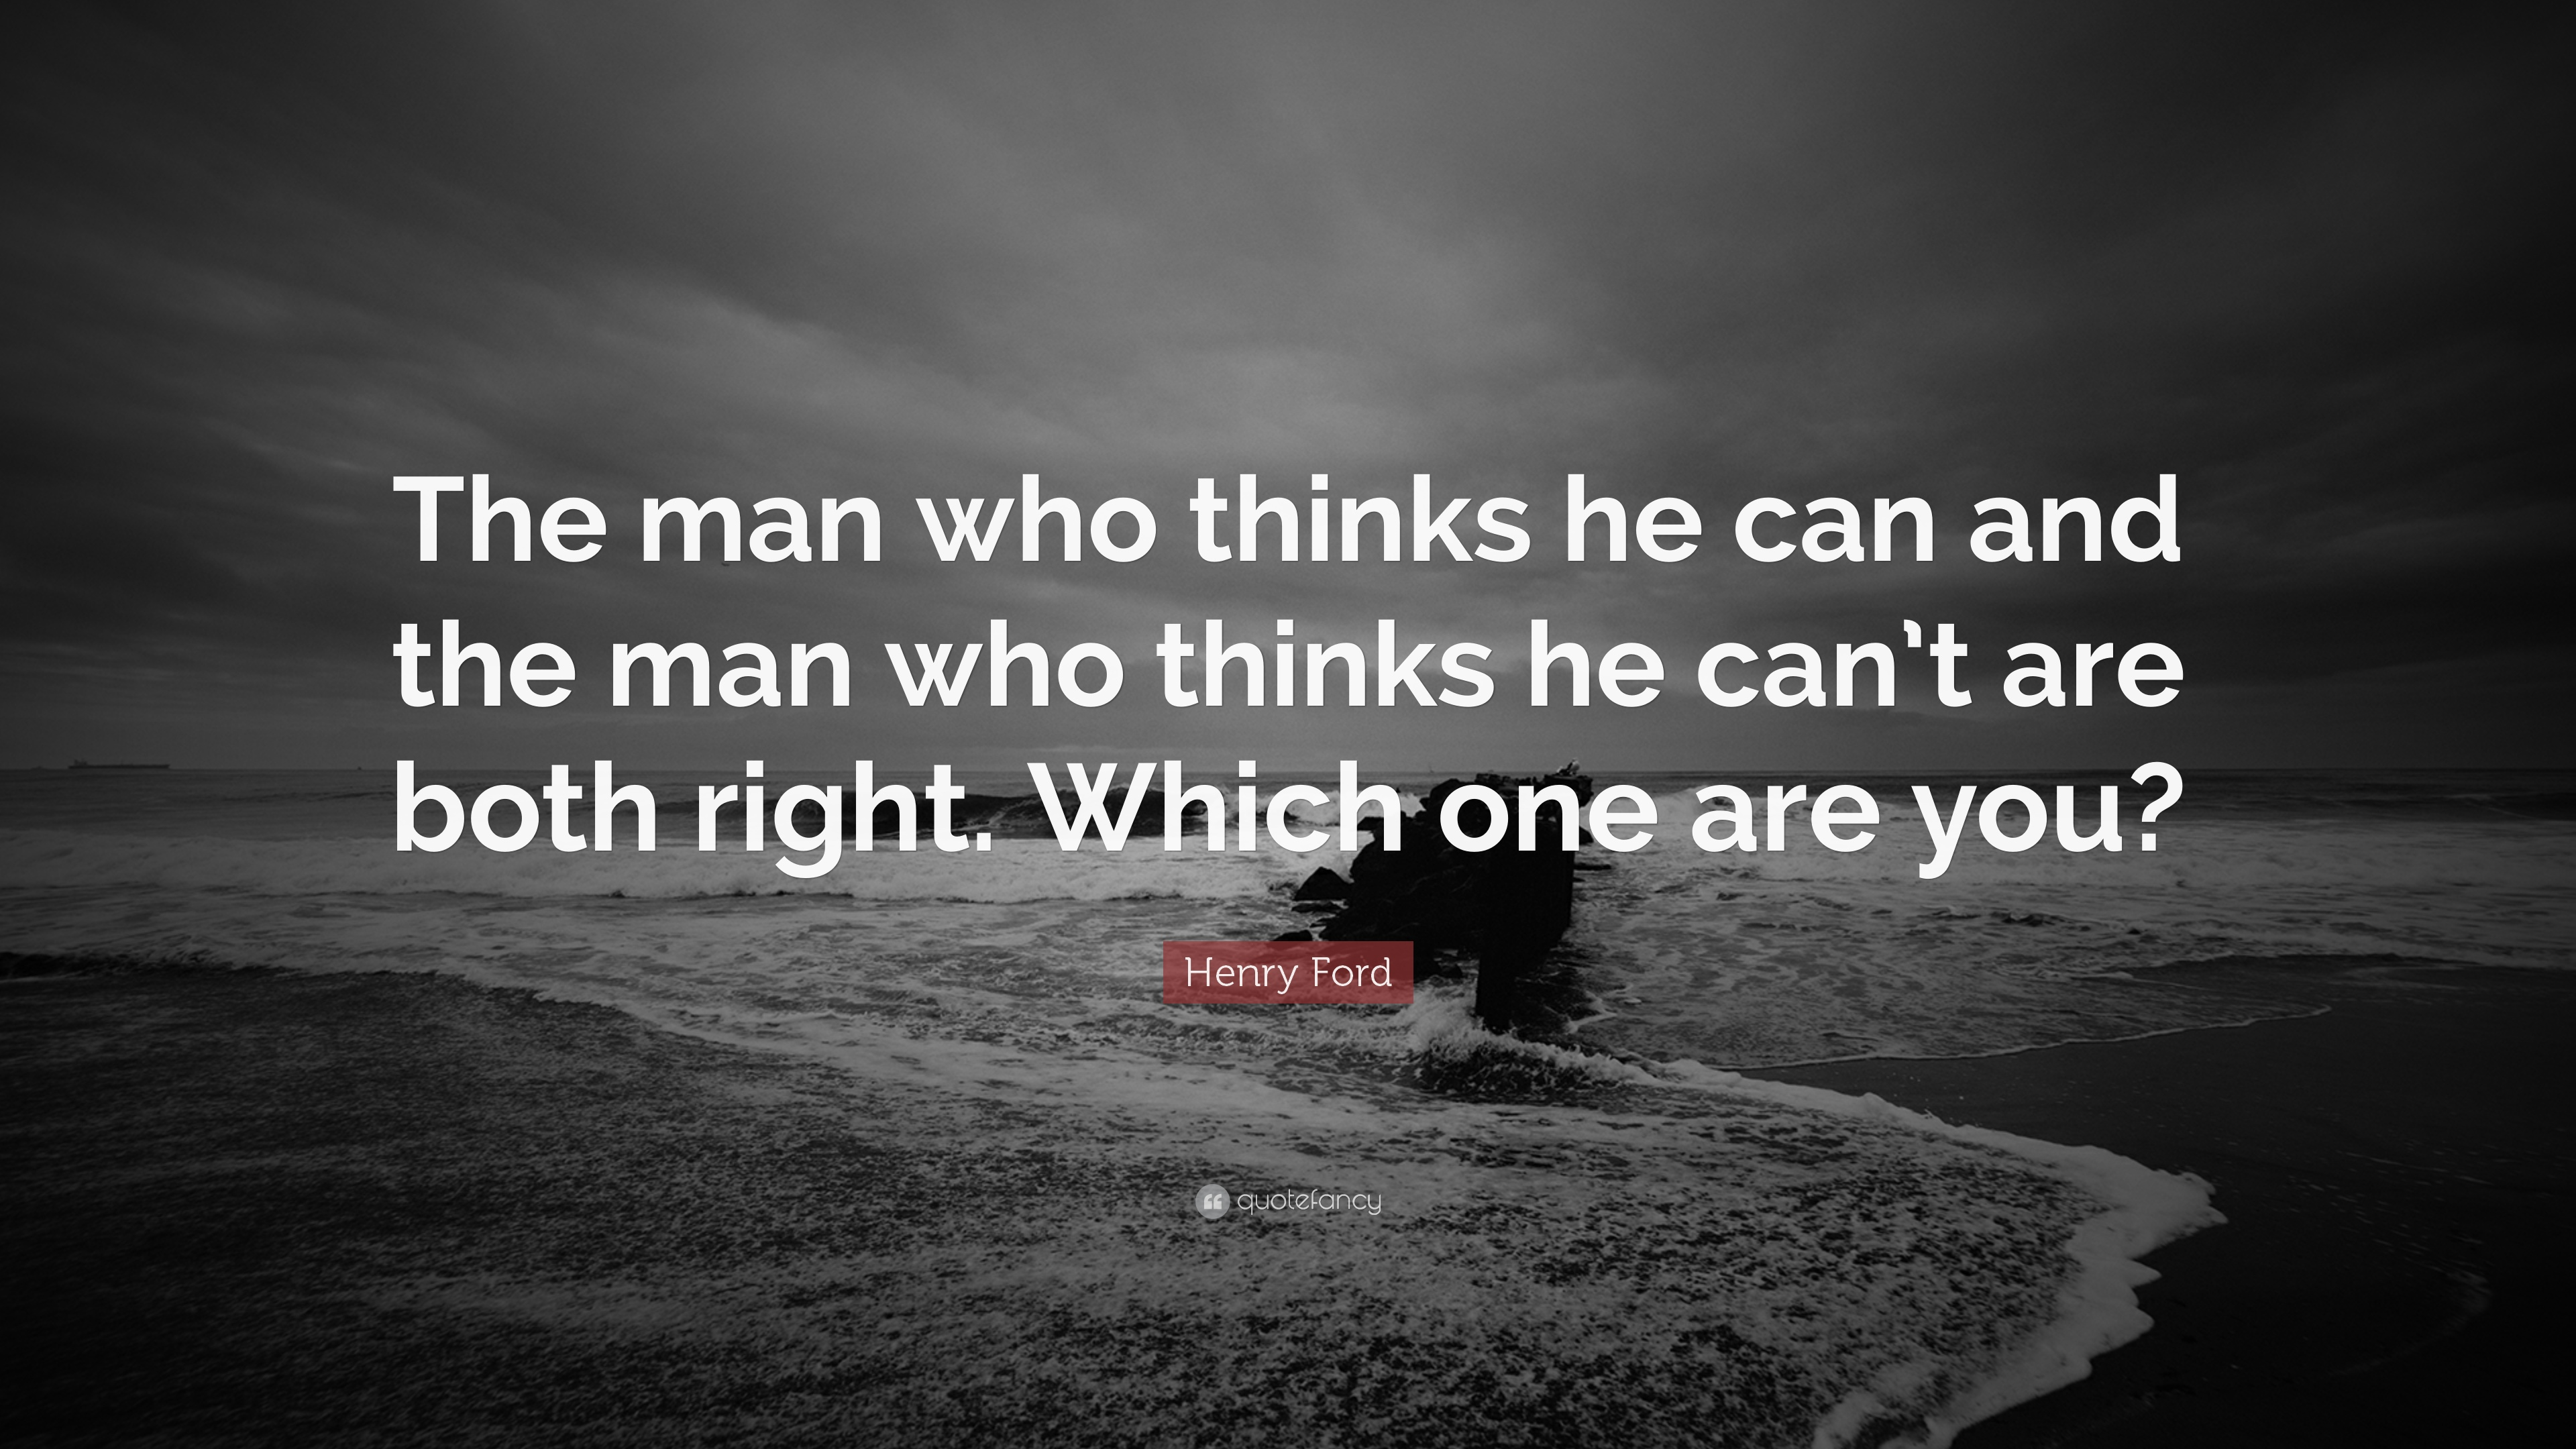 Henry Ford Quote The Man Who Thinks He Can And The Man Who Thinks